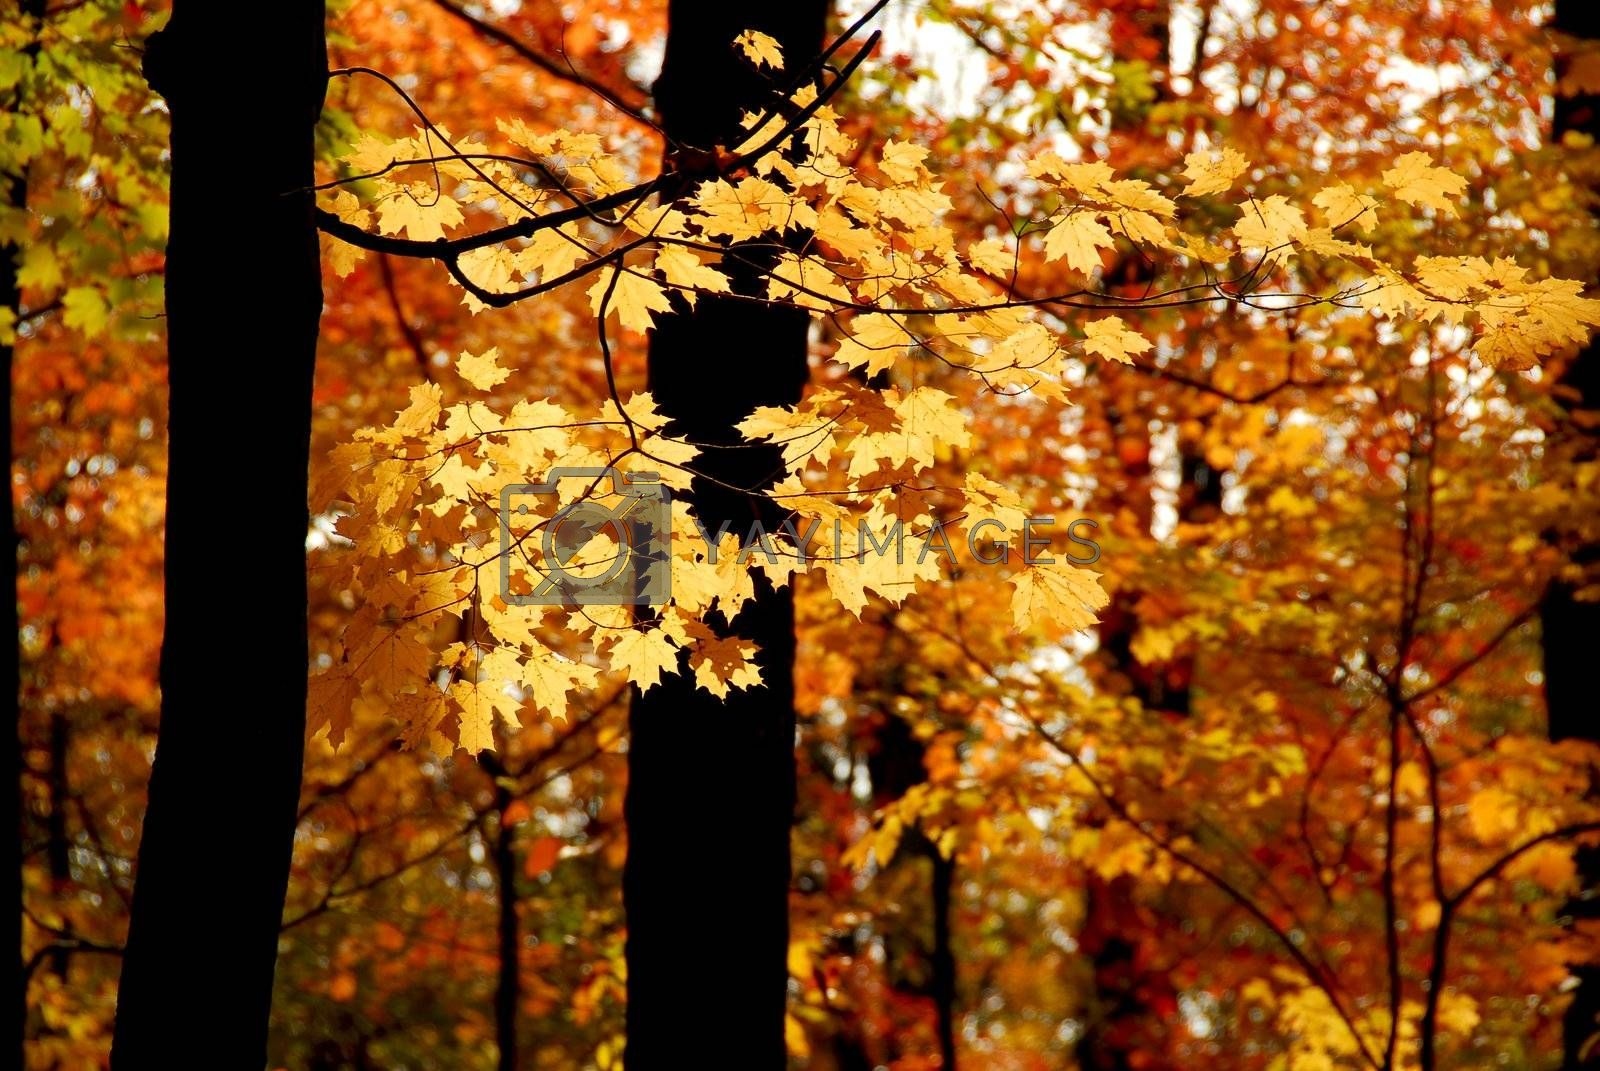 Maple branch with sunlit yellow leaves in autumn forest